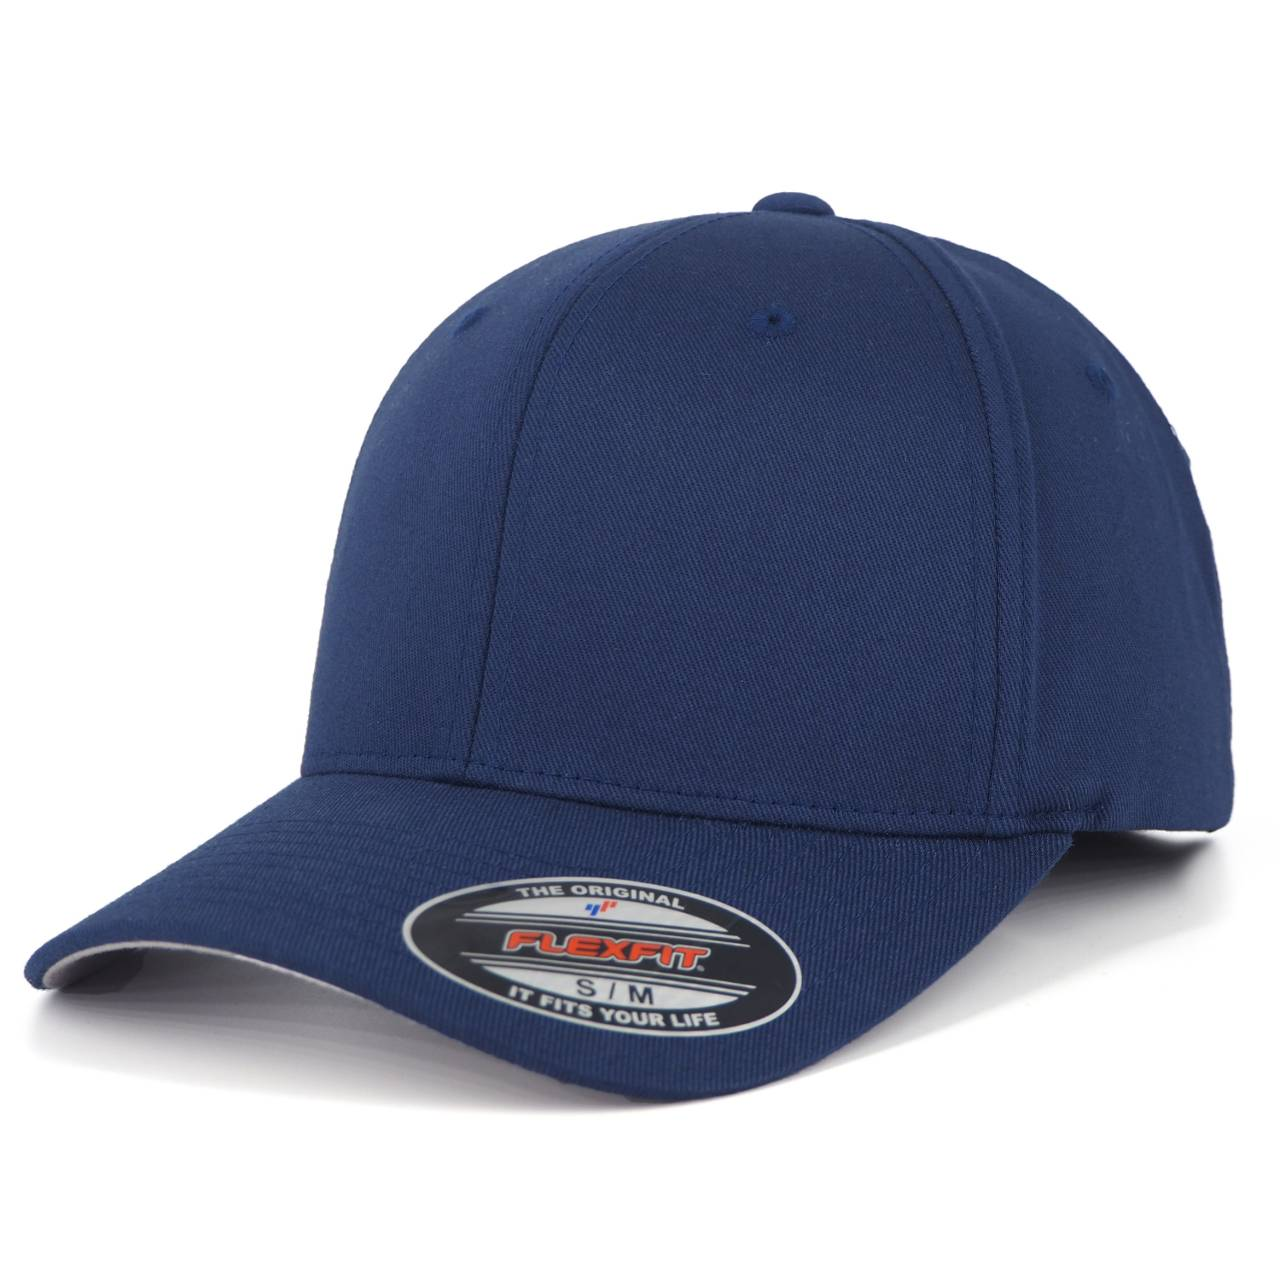 6277-00155-00 FLEXFIT WOOLY COMBED NAVY BLANK CAP